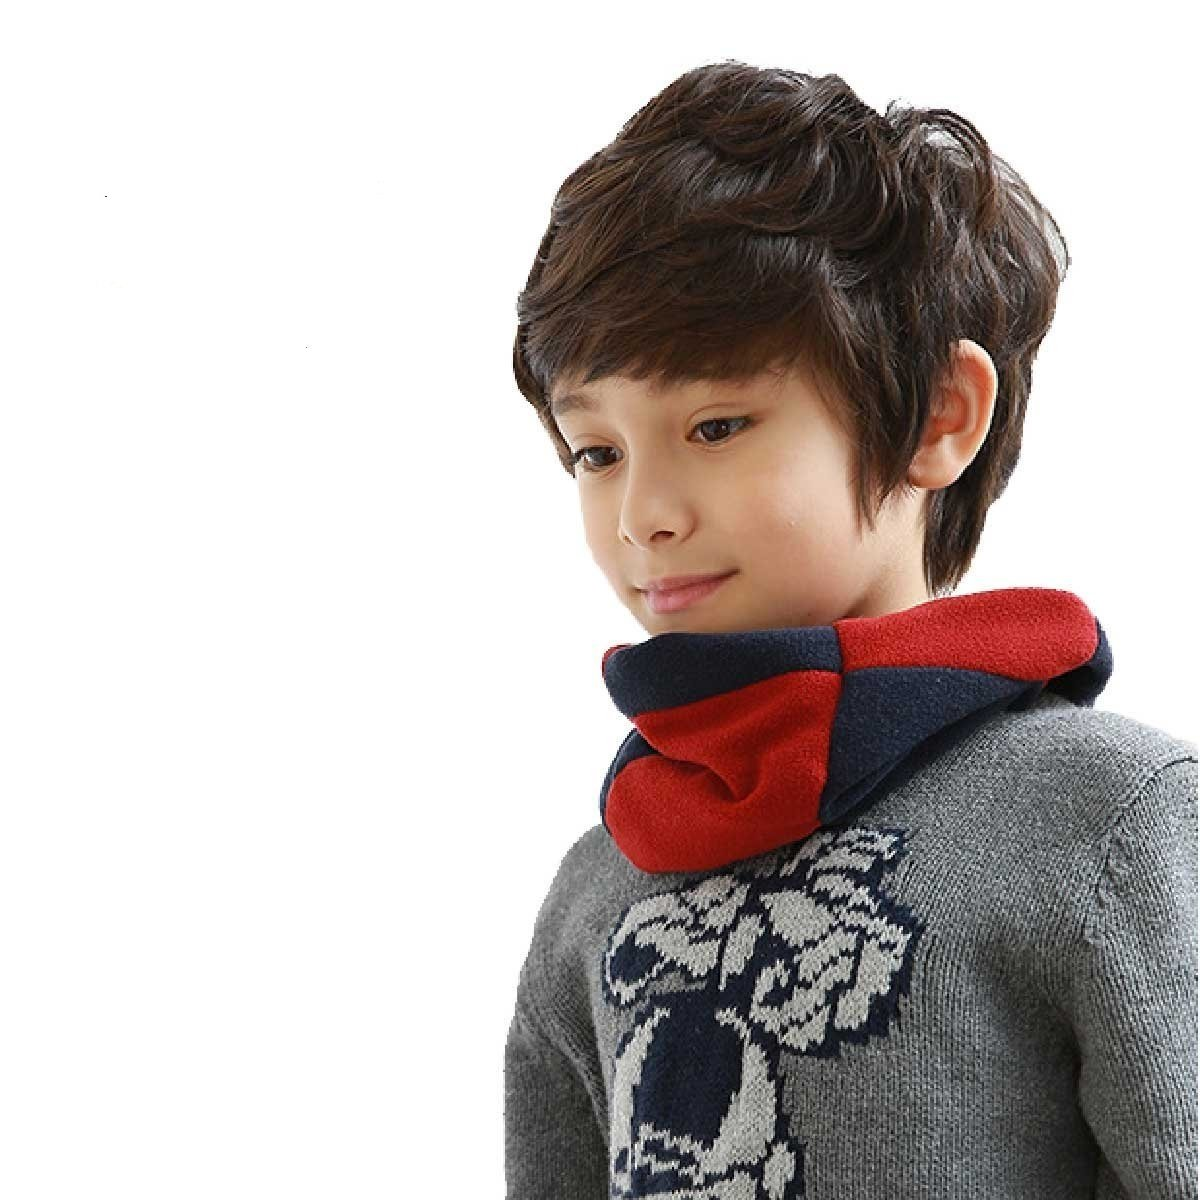 Triwonder Kids Winter Warm Scarf Thick Infinity Circle Loop Scarf Neck Warmer for 2-12 Years Old Boys Girls (Blue) OS1103BE